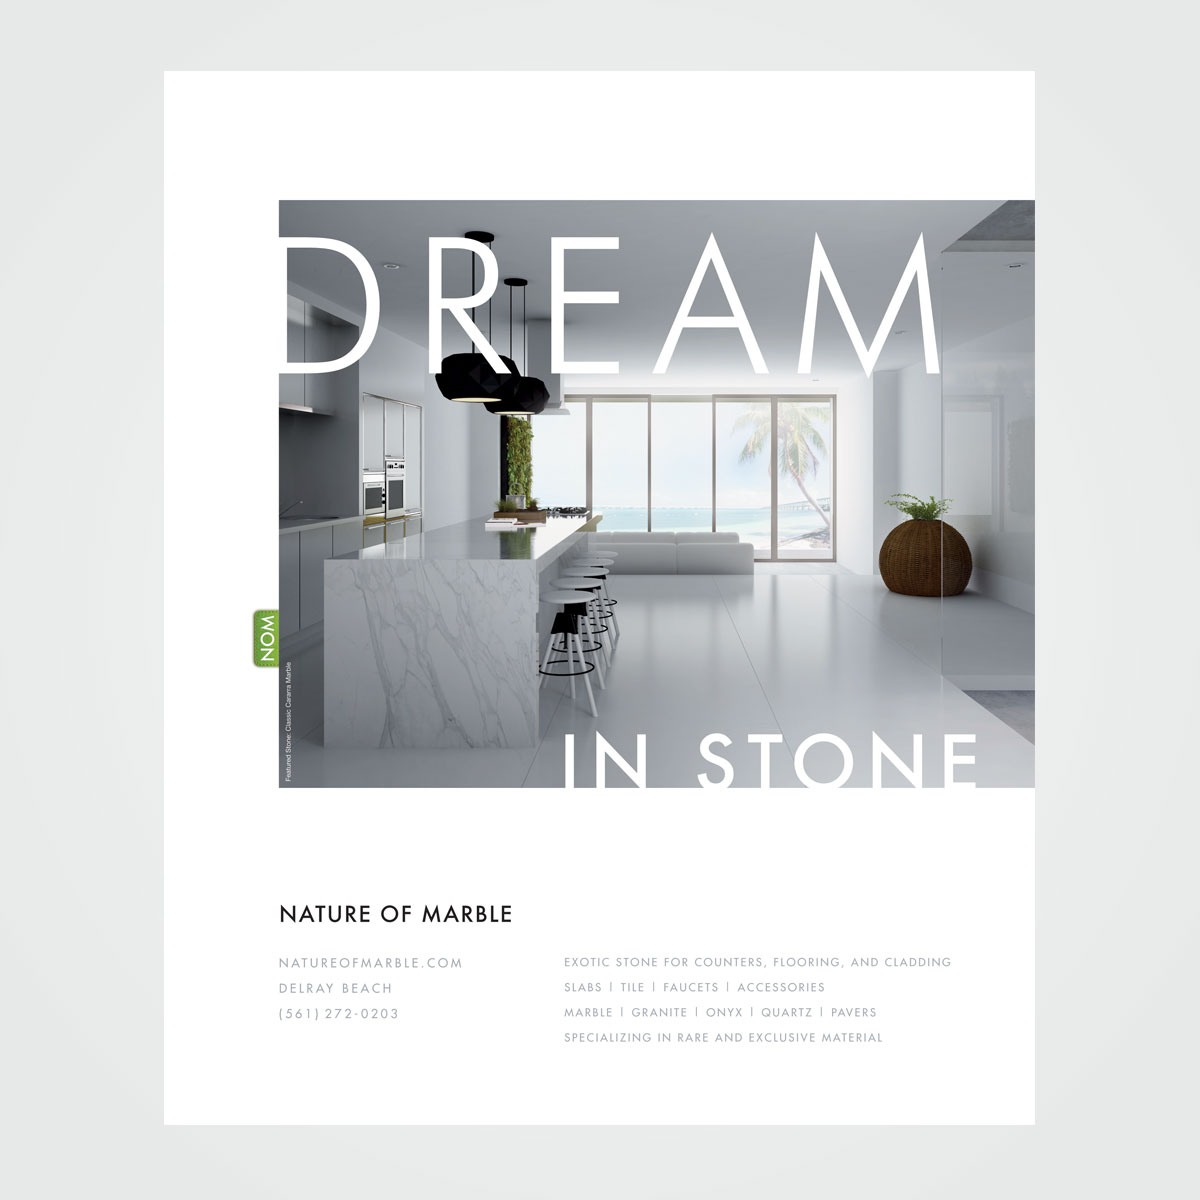 Proposed magazine ad design for Nature of Marble, Delray Beach